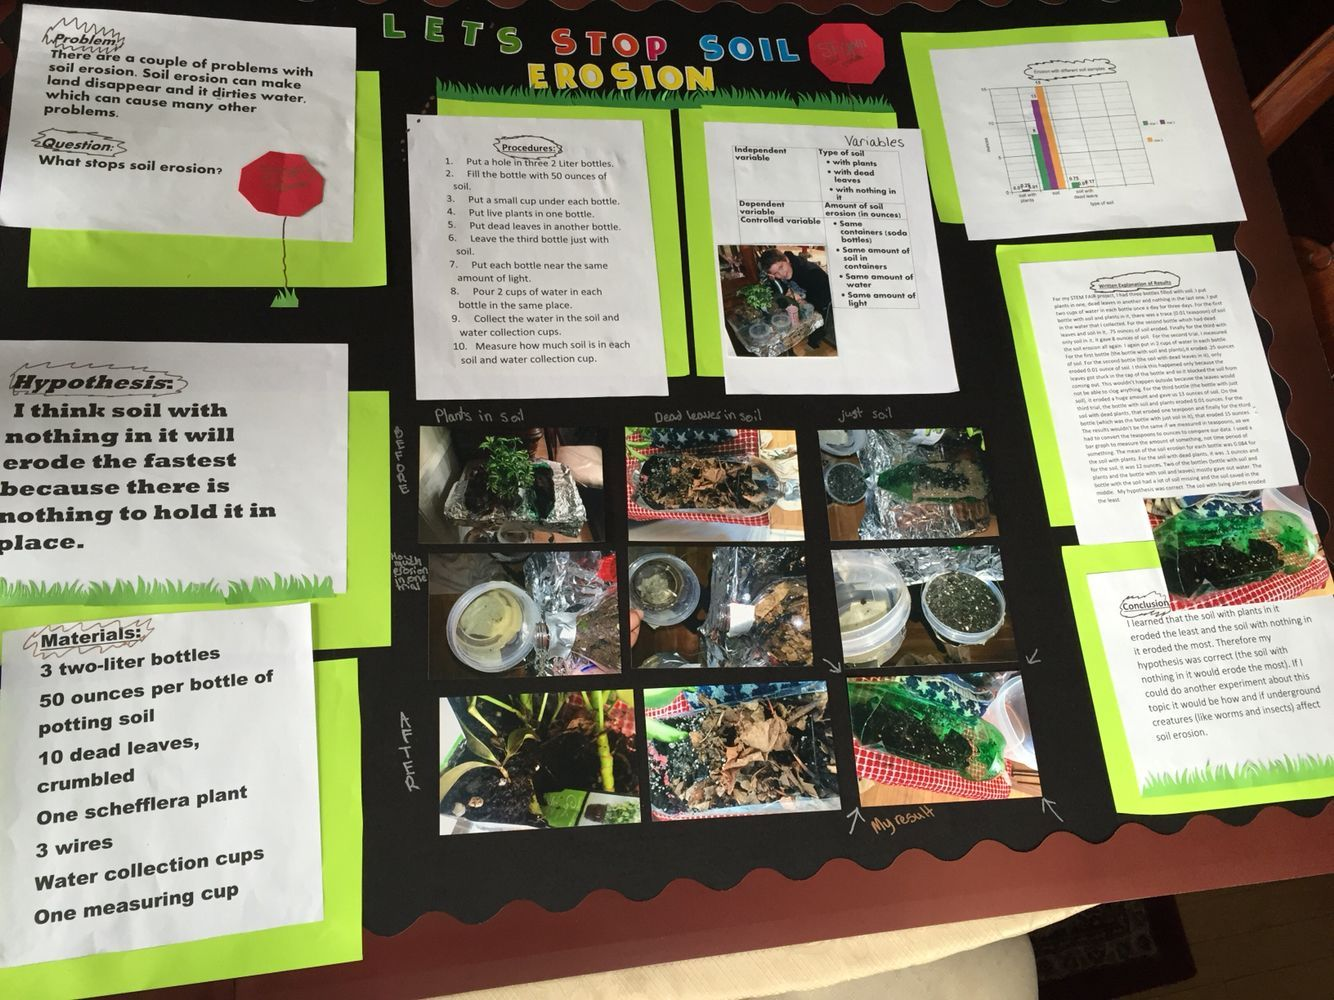 Finished Soil Erosion Board Lets Stop Soil Erosion Grade 4